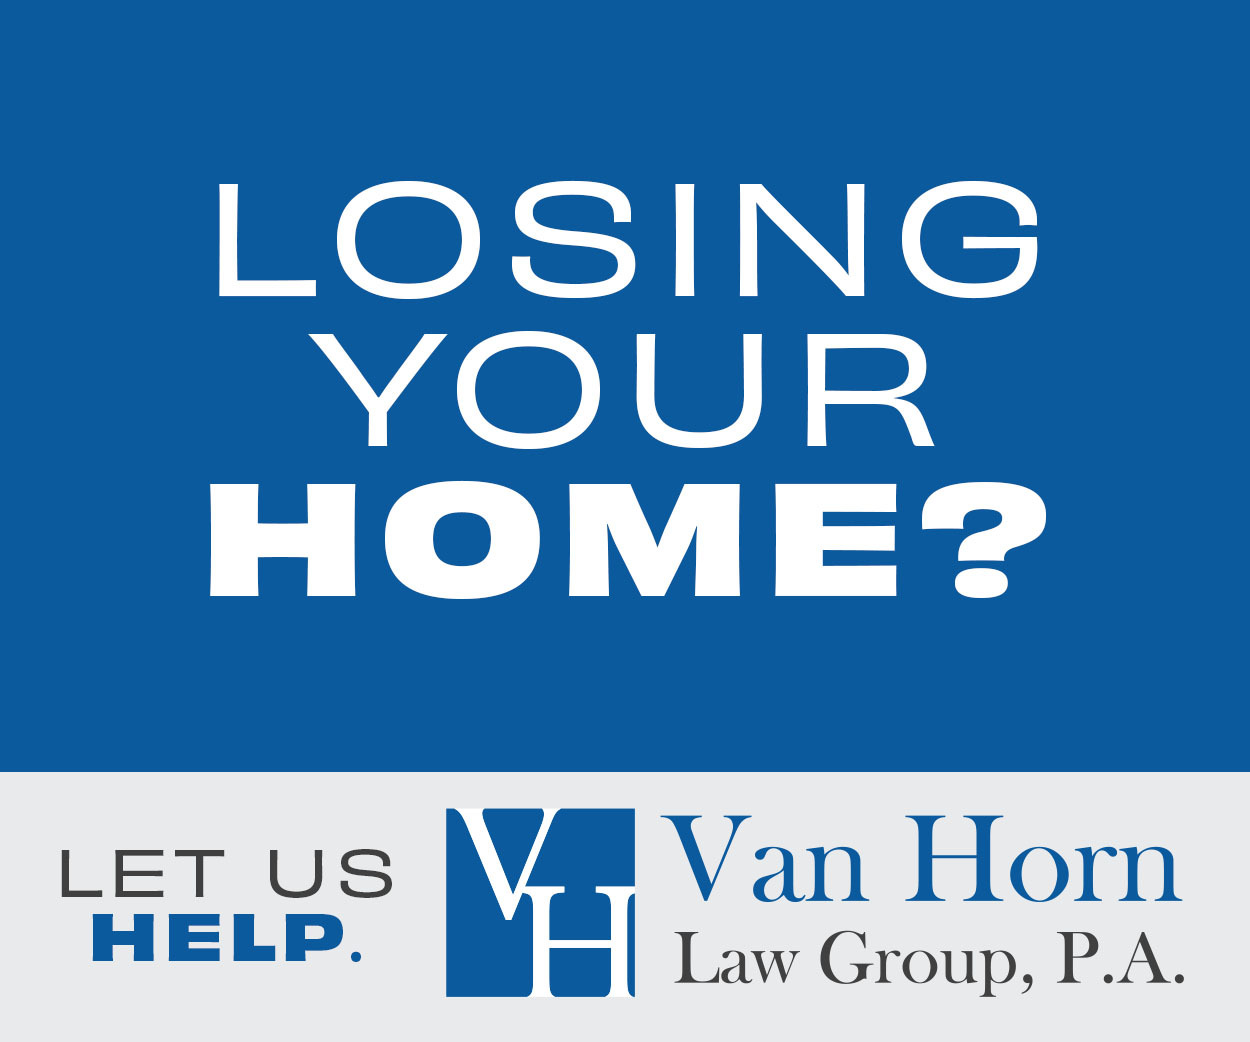 Van Horn Law Group, P.A. - Losing Your Home?